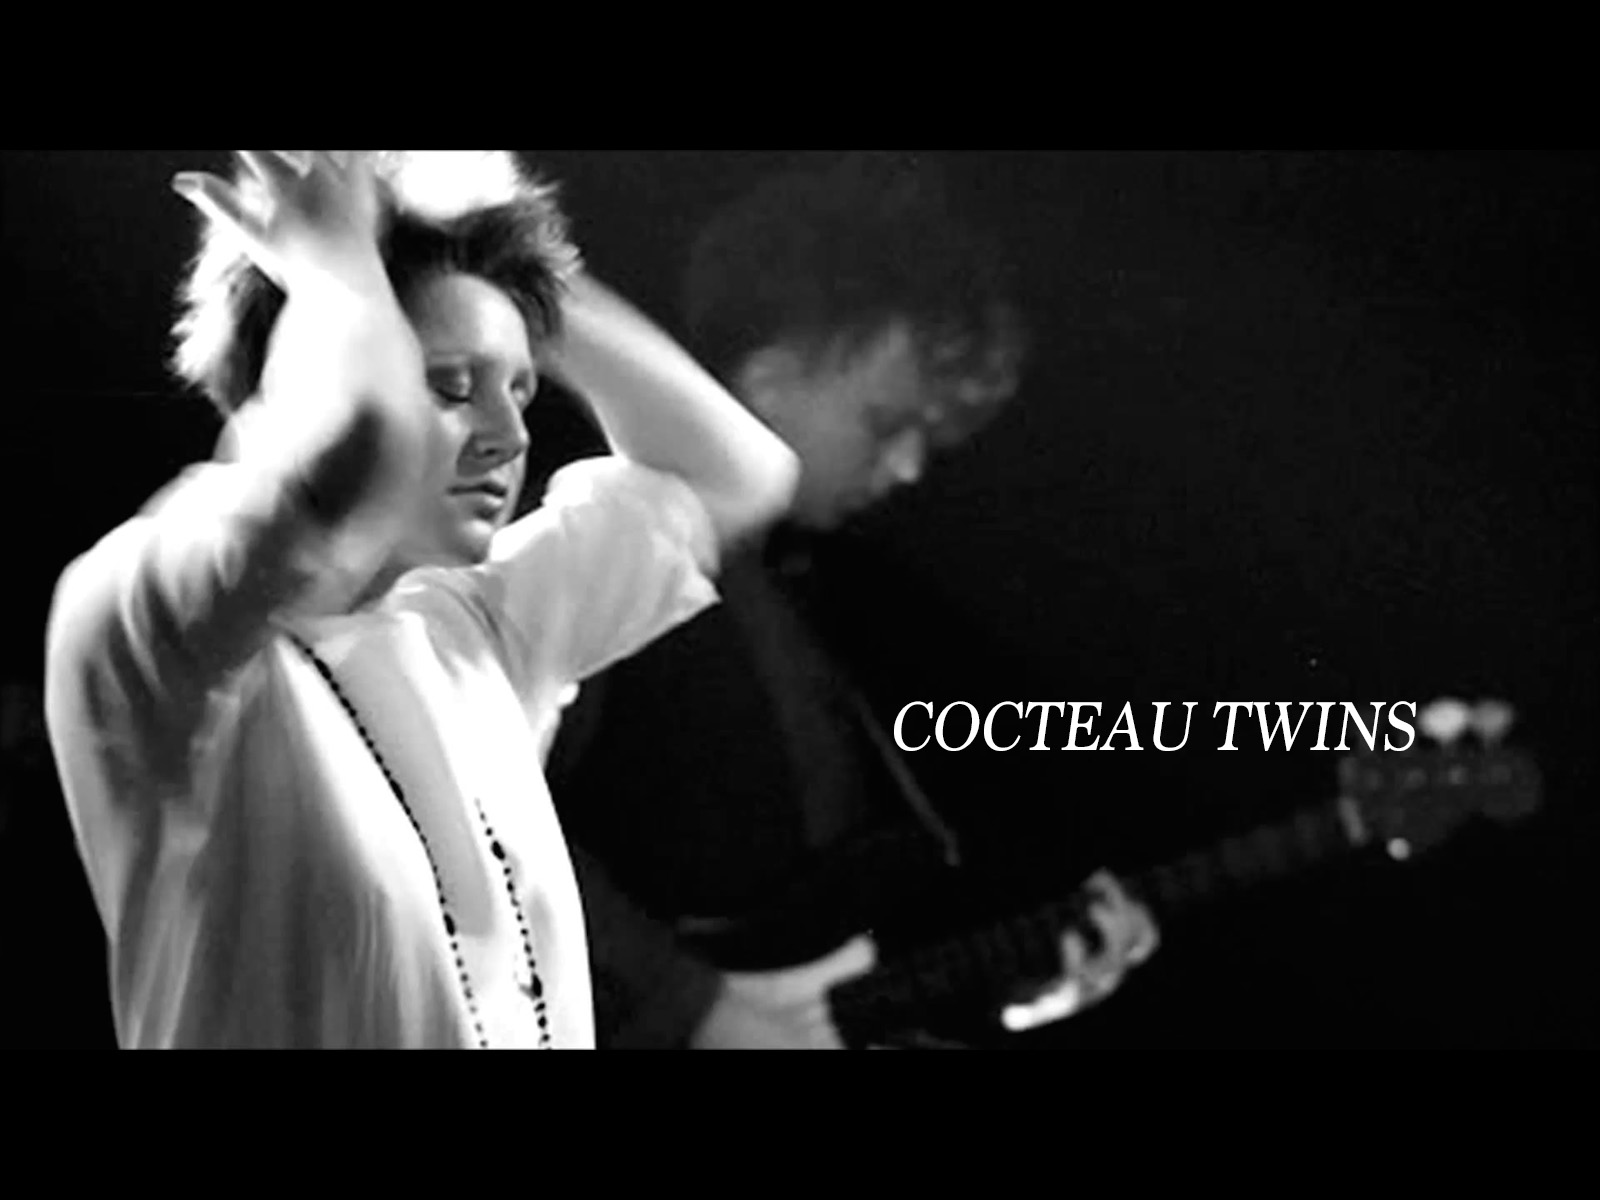 BACK TO COCTEAU TWINS